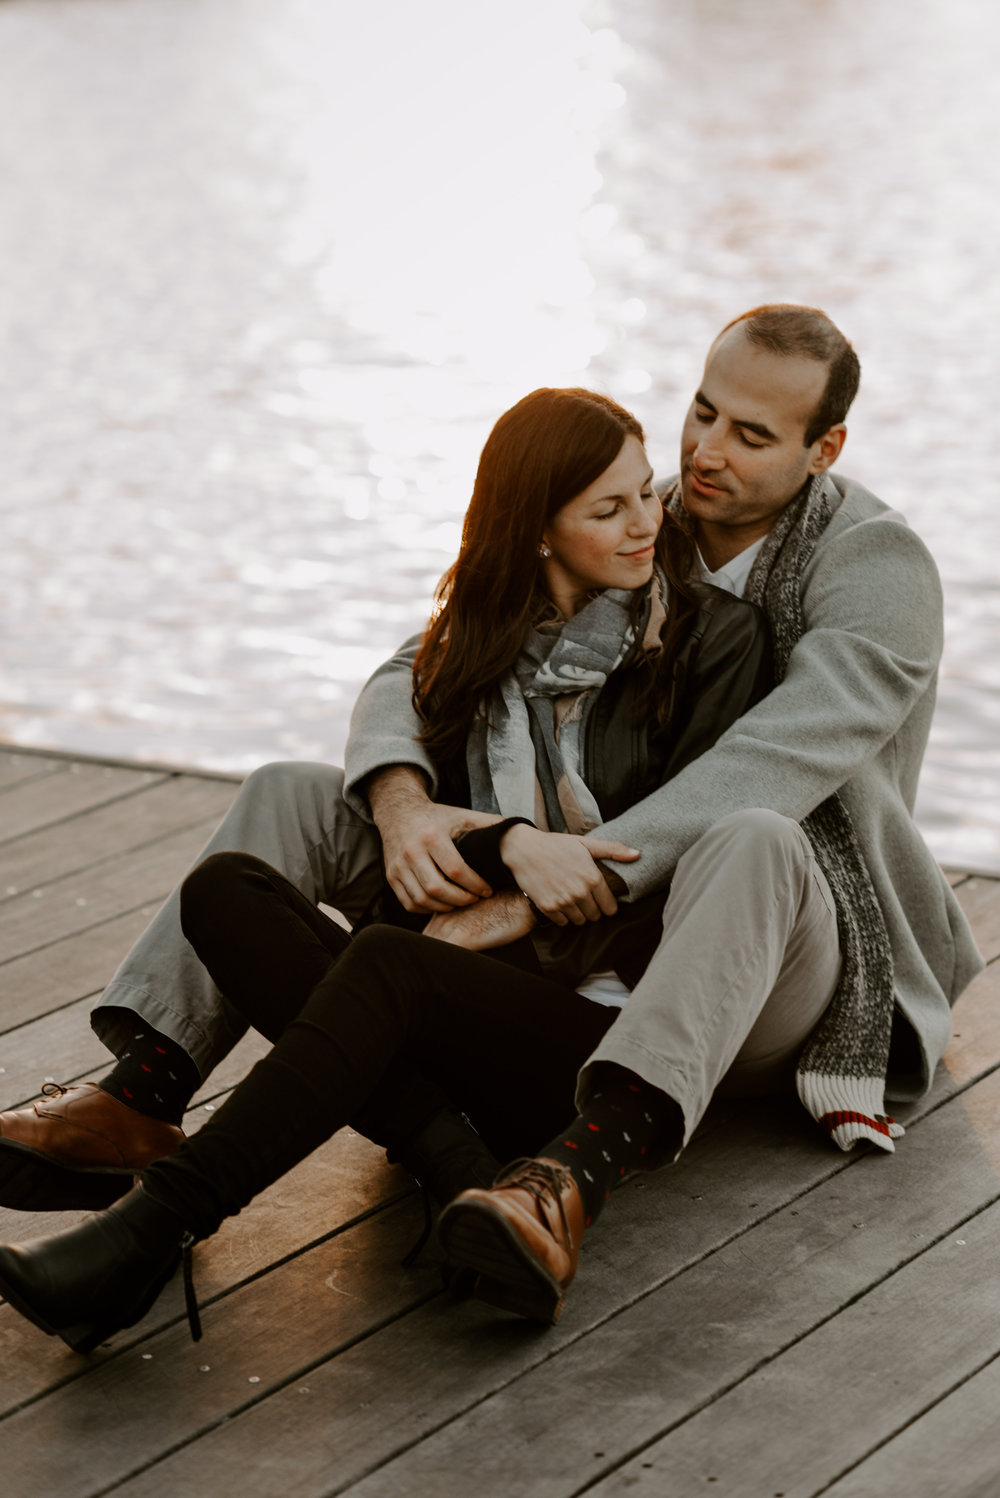 Dramatic and Moody Charles River, Boston Engagement Session | Boston Wedding Photographer | Madeline Rose Photography Co.